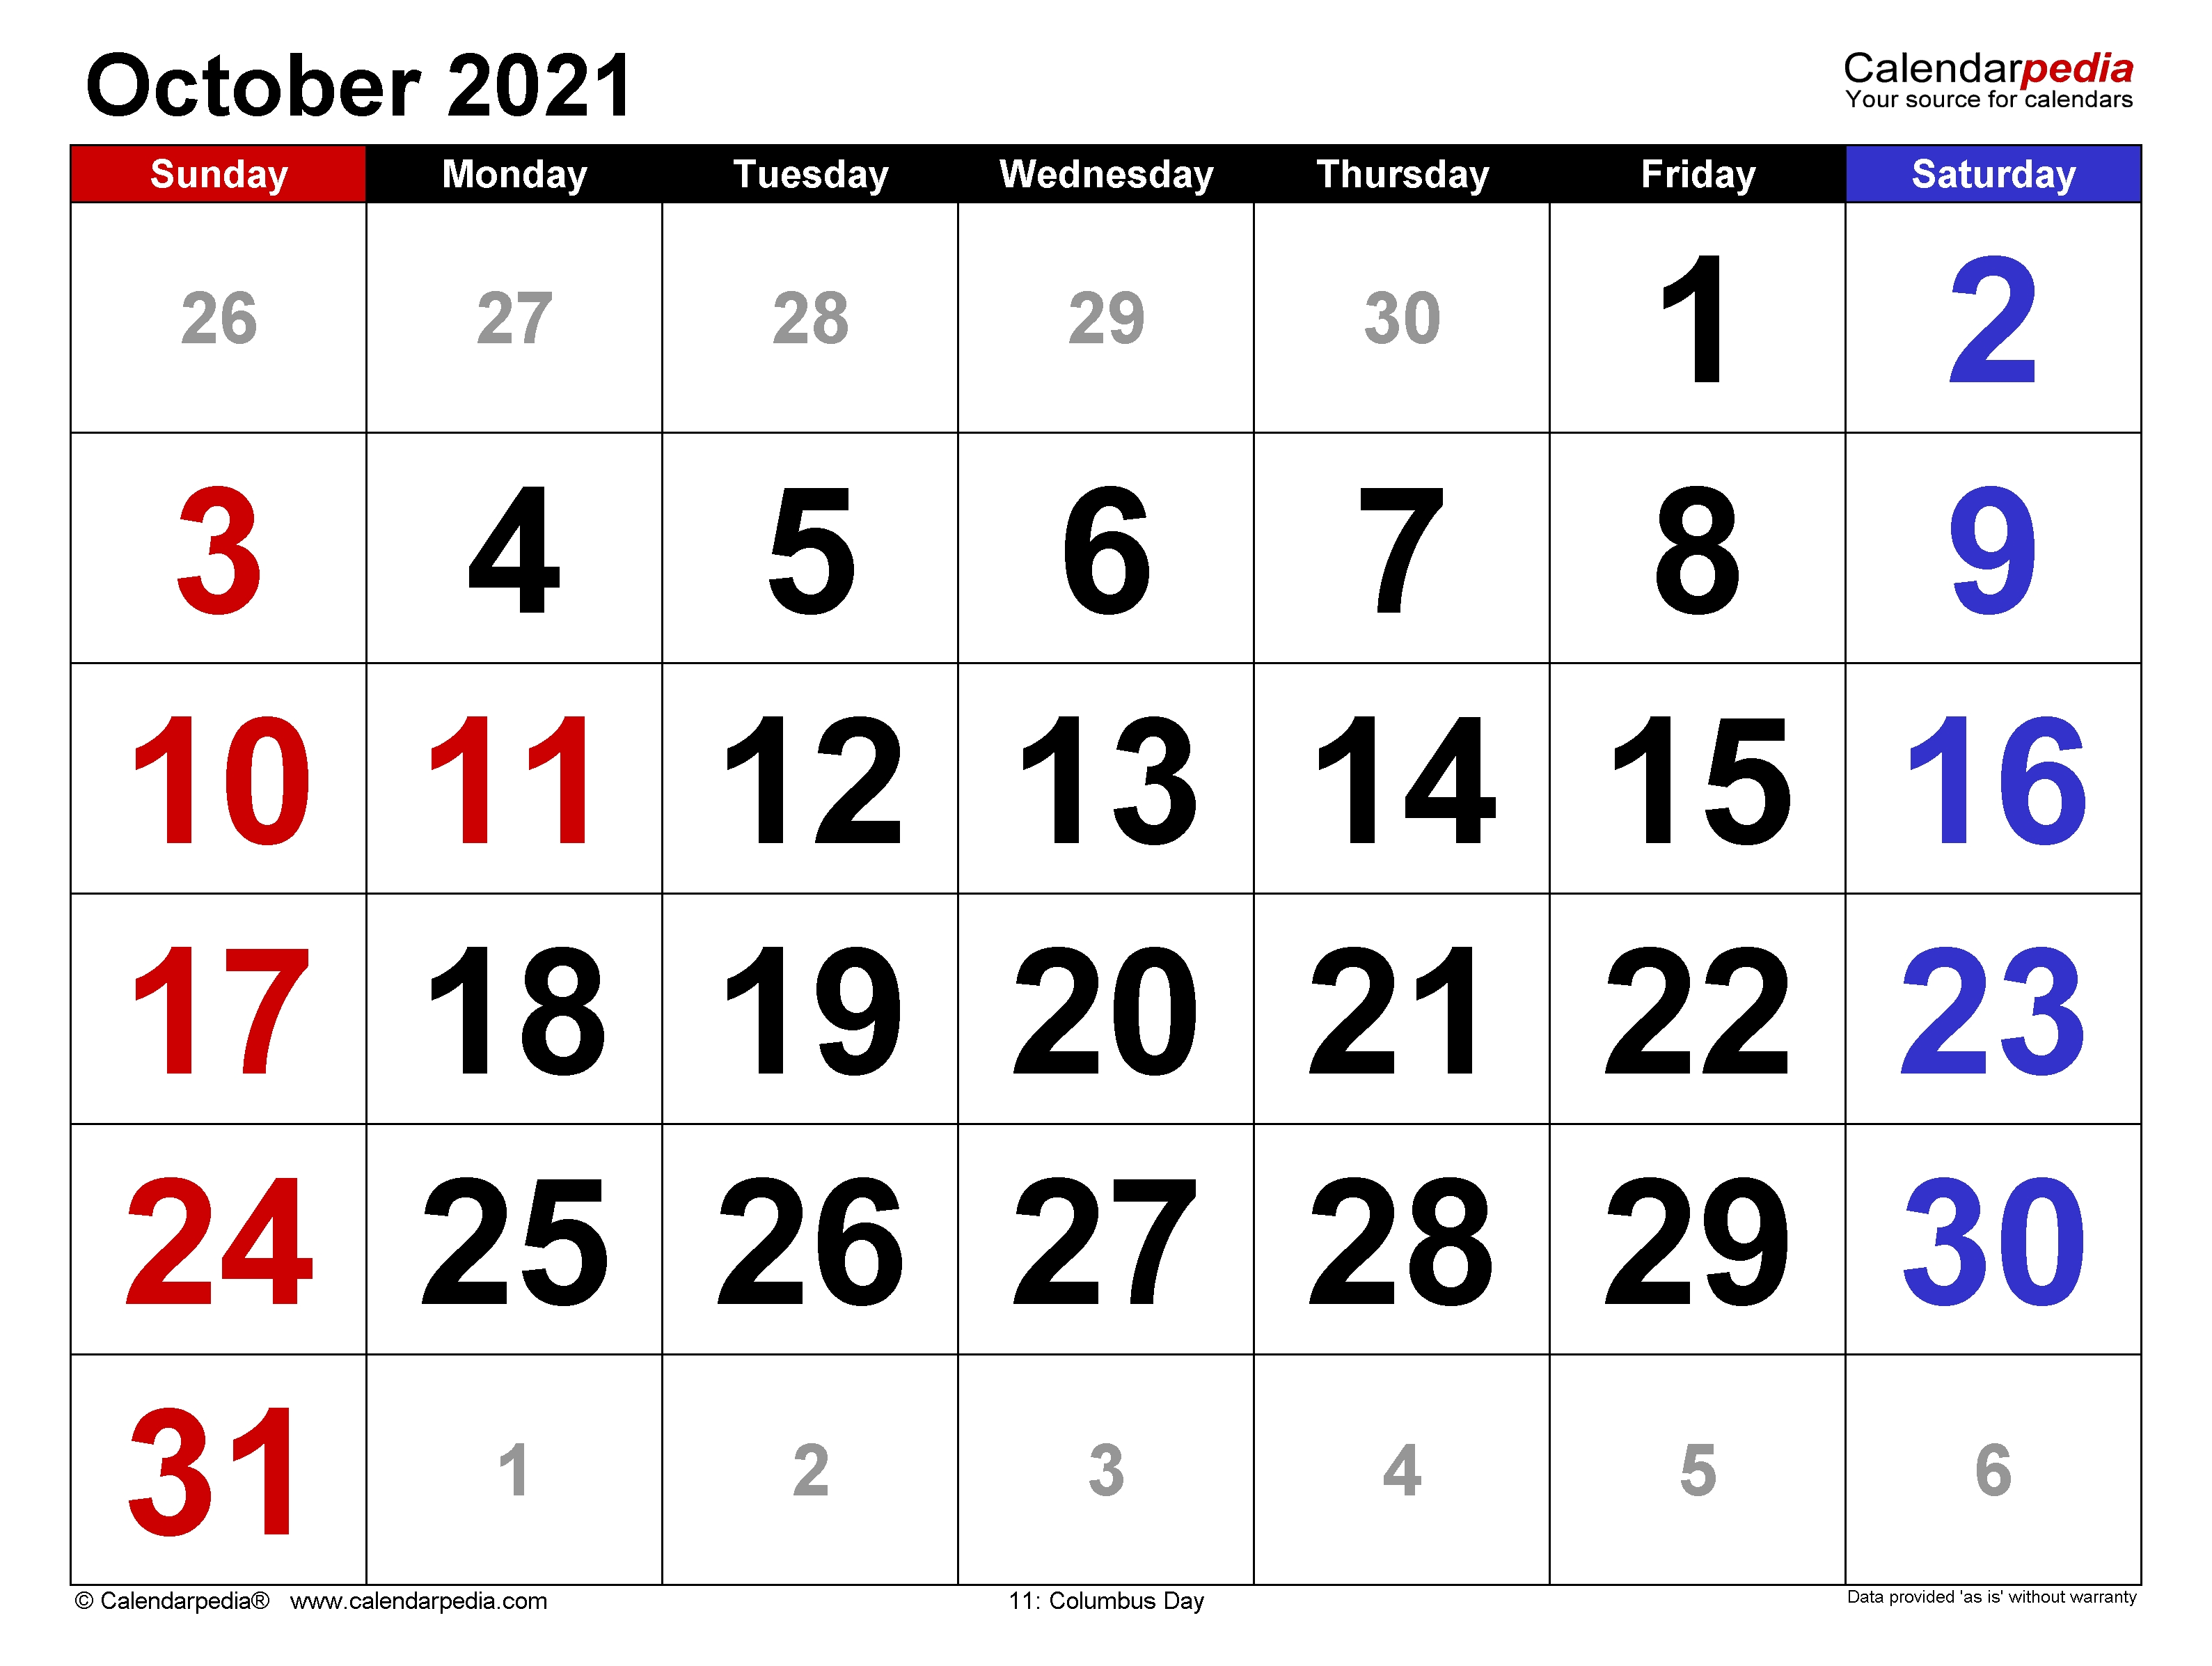 October 2021 Calendar   Templates For Word, Excel And Pdf September October November 2021 Calendar